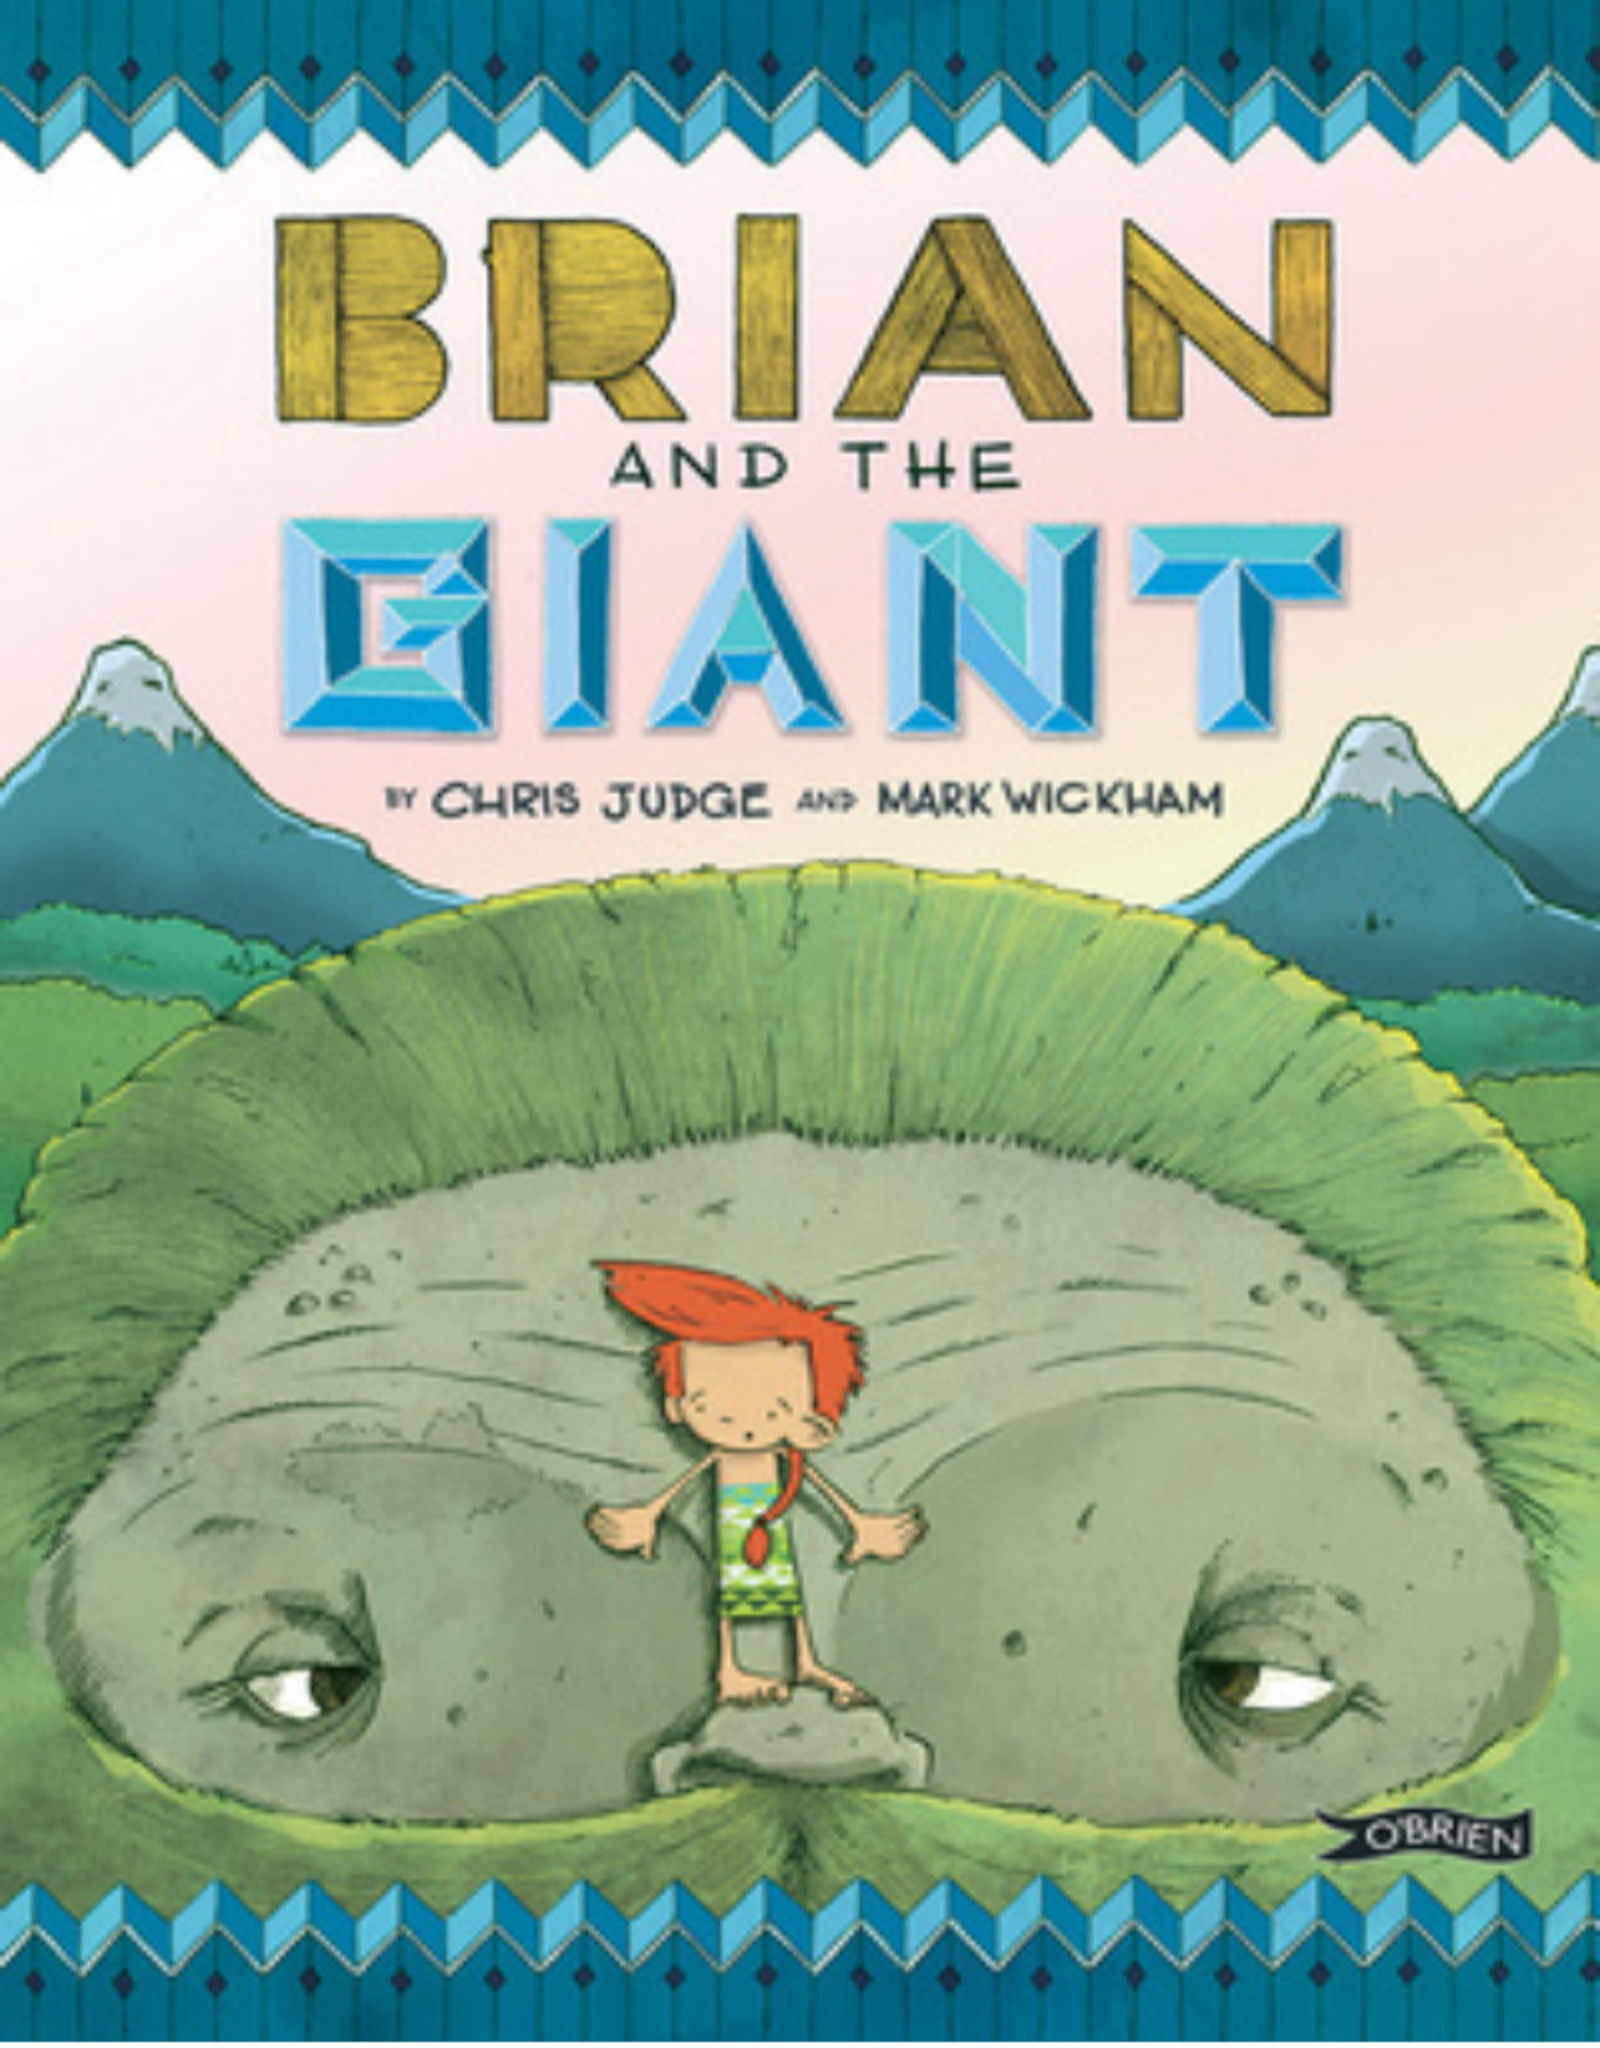 Brian and the Giant - Chris Judge and Mark Wickham